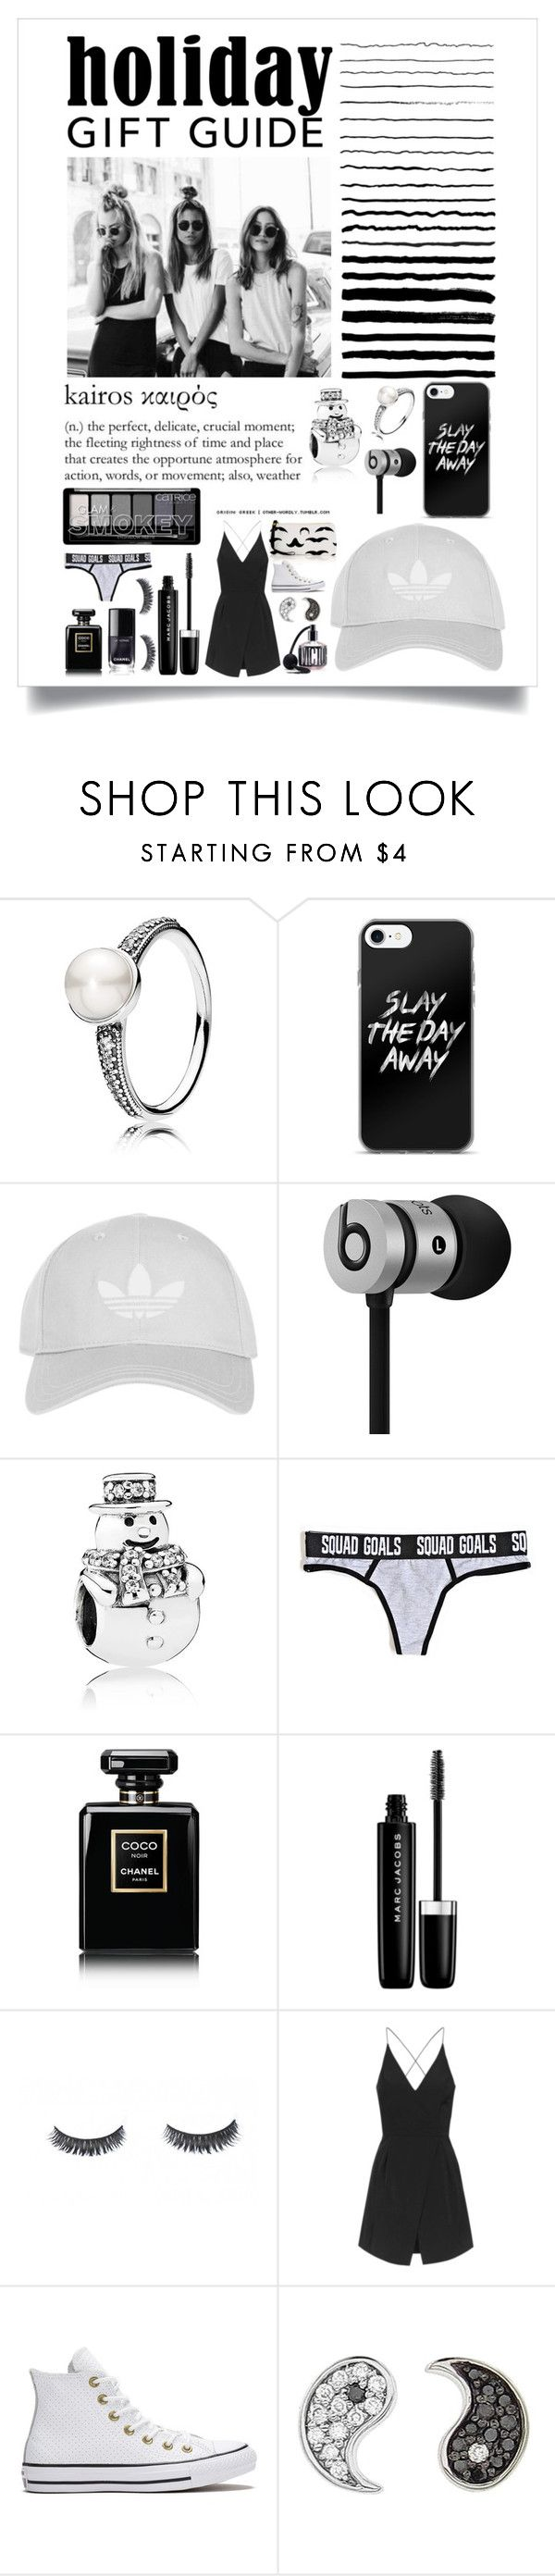 """Gift guide in black and white!"" by rhiannonpsayer on Polyvore featuring Kye, Pandora, Topshop, Beats by Dr. Dre, Chanel, Marc Jacobs, Converse, Sydney Evan and Victoria's Secret"